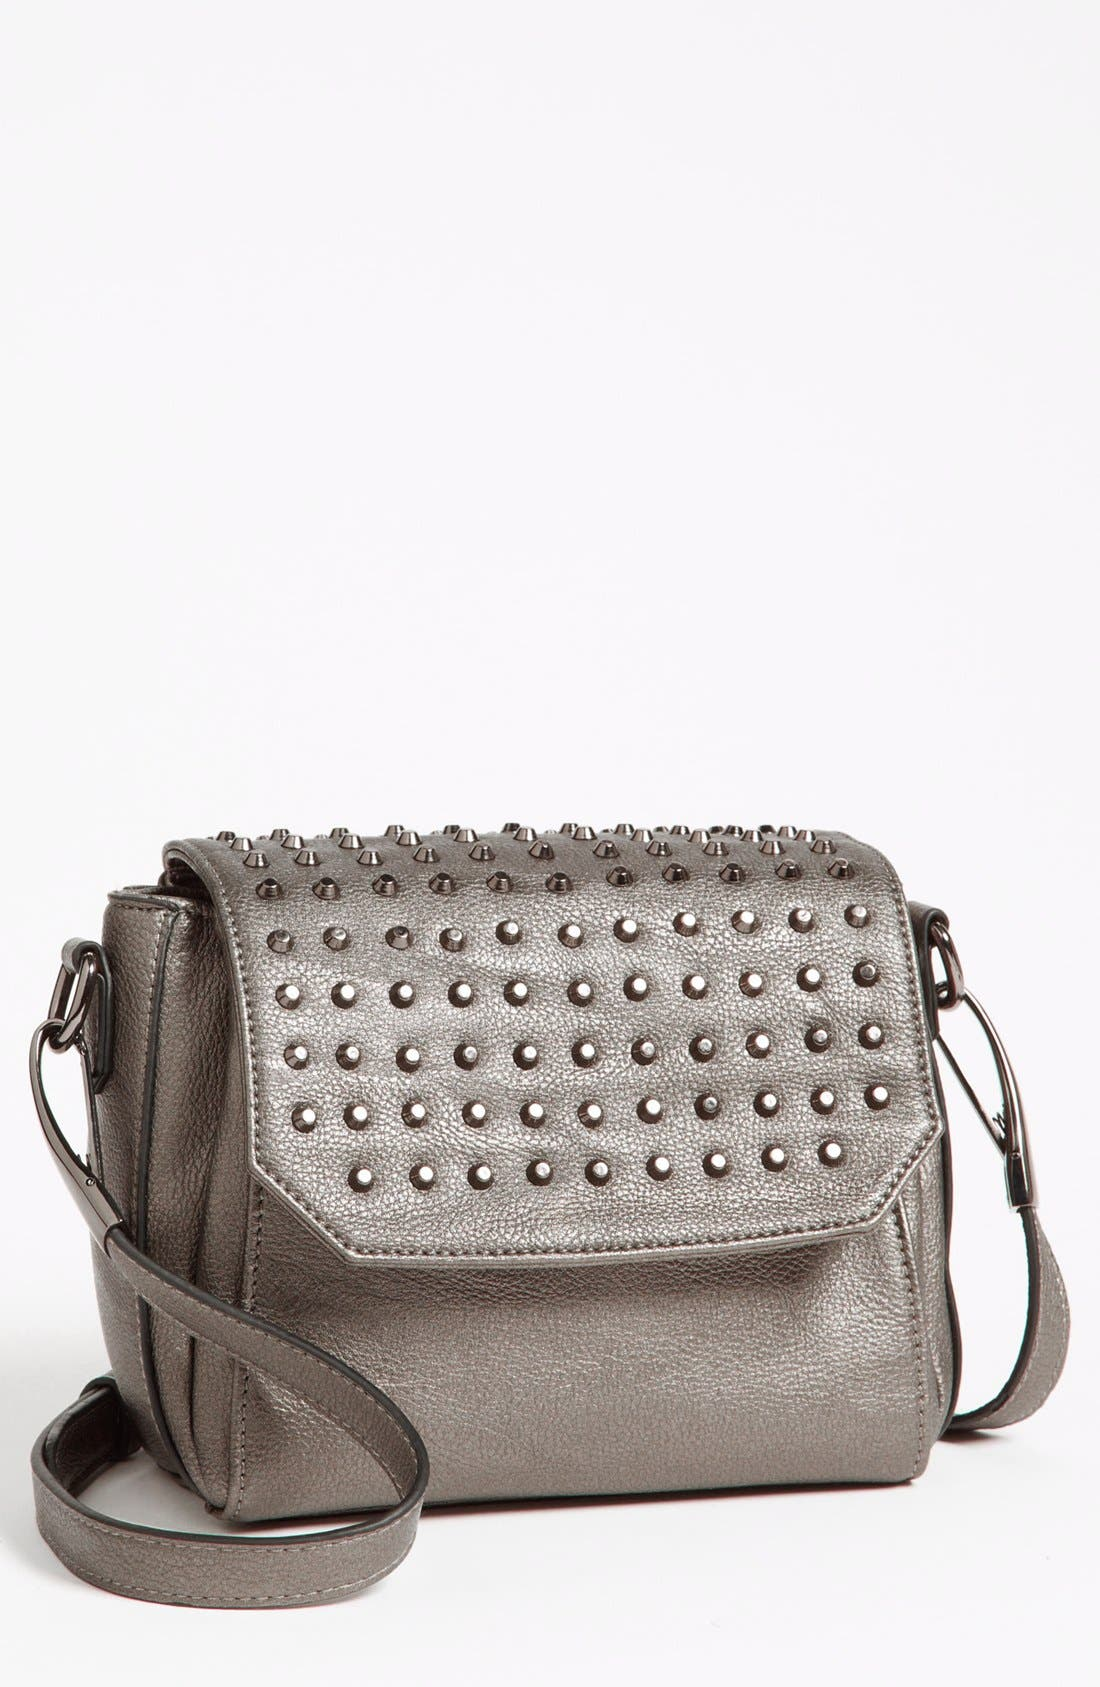 Main Image - POVERTY FLATS by rian 'small' faux leather crossbody bag